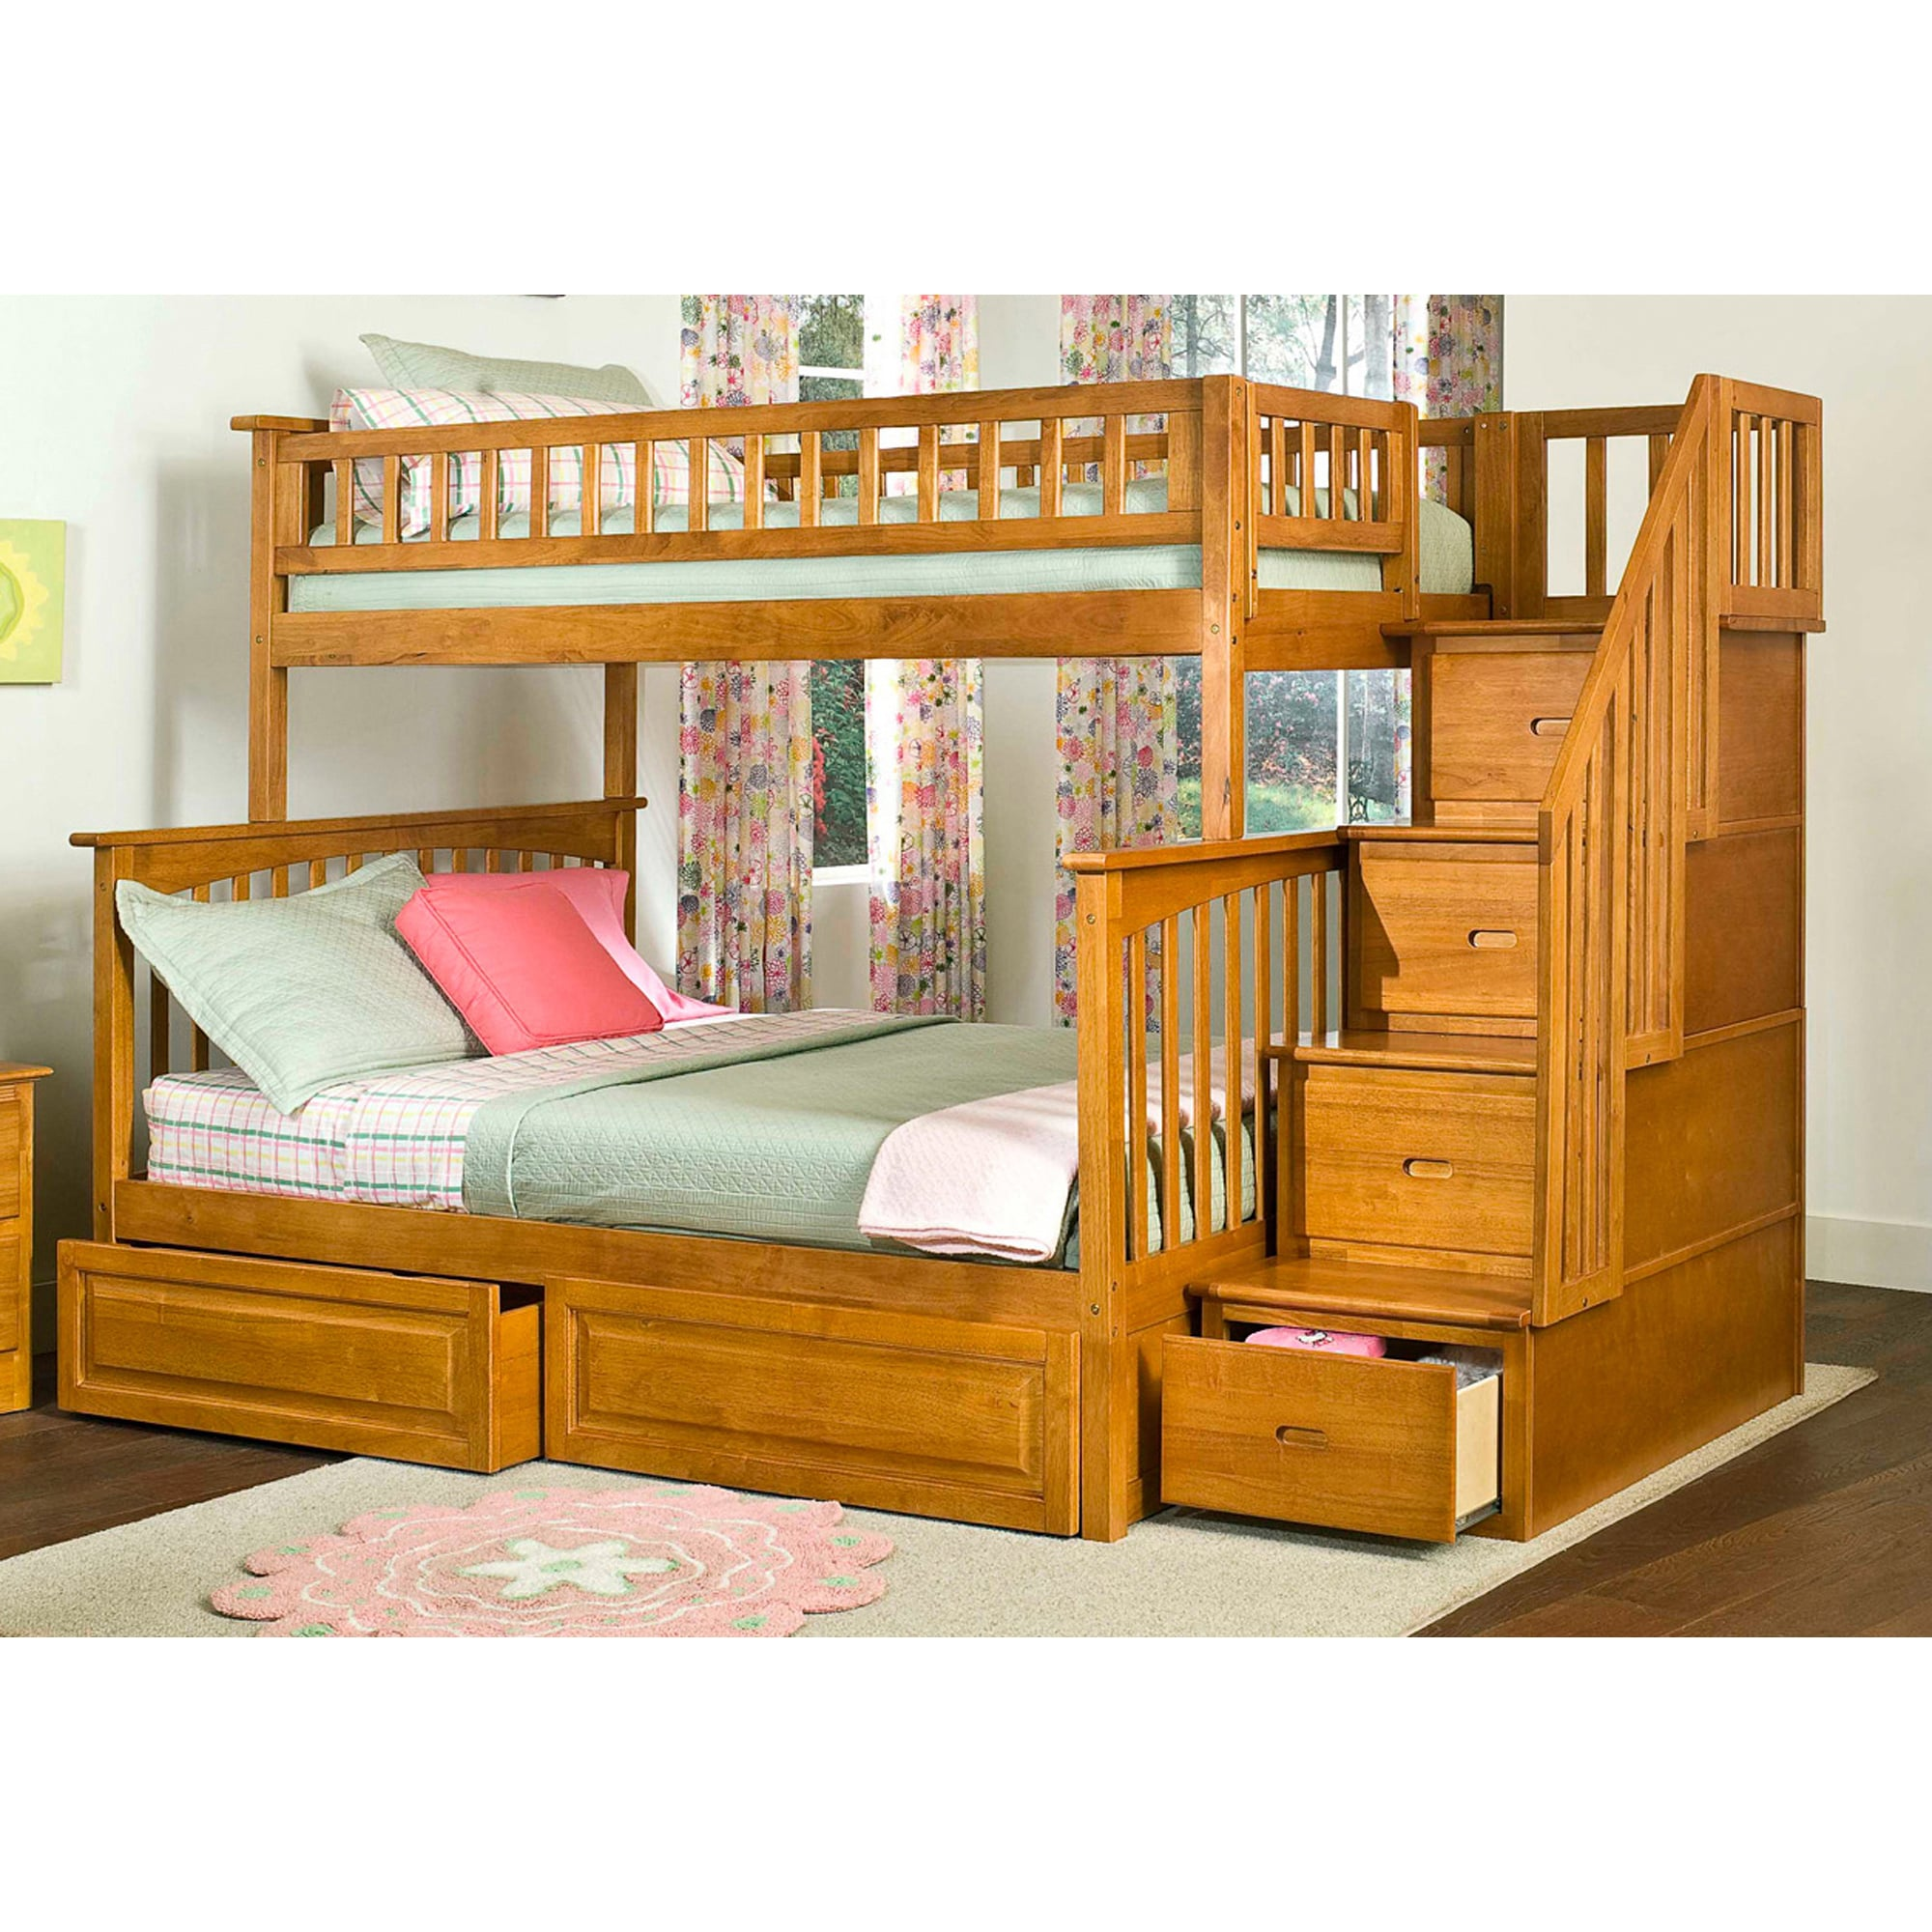 Atlantic Furniture Columbia Staircase Bunk Bed with Bed D...